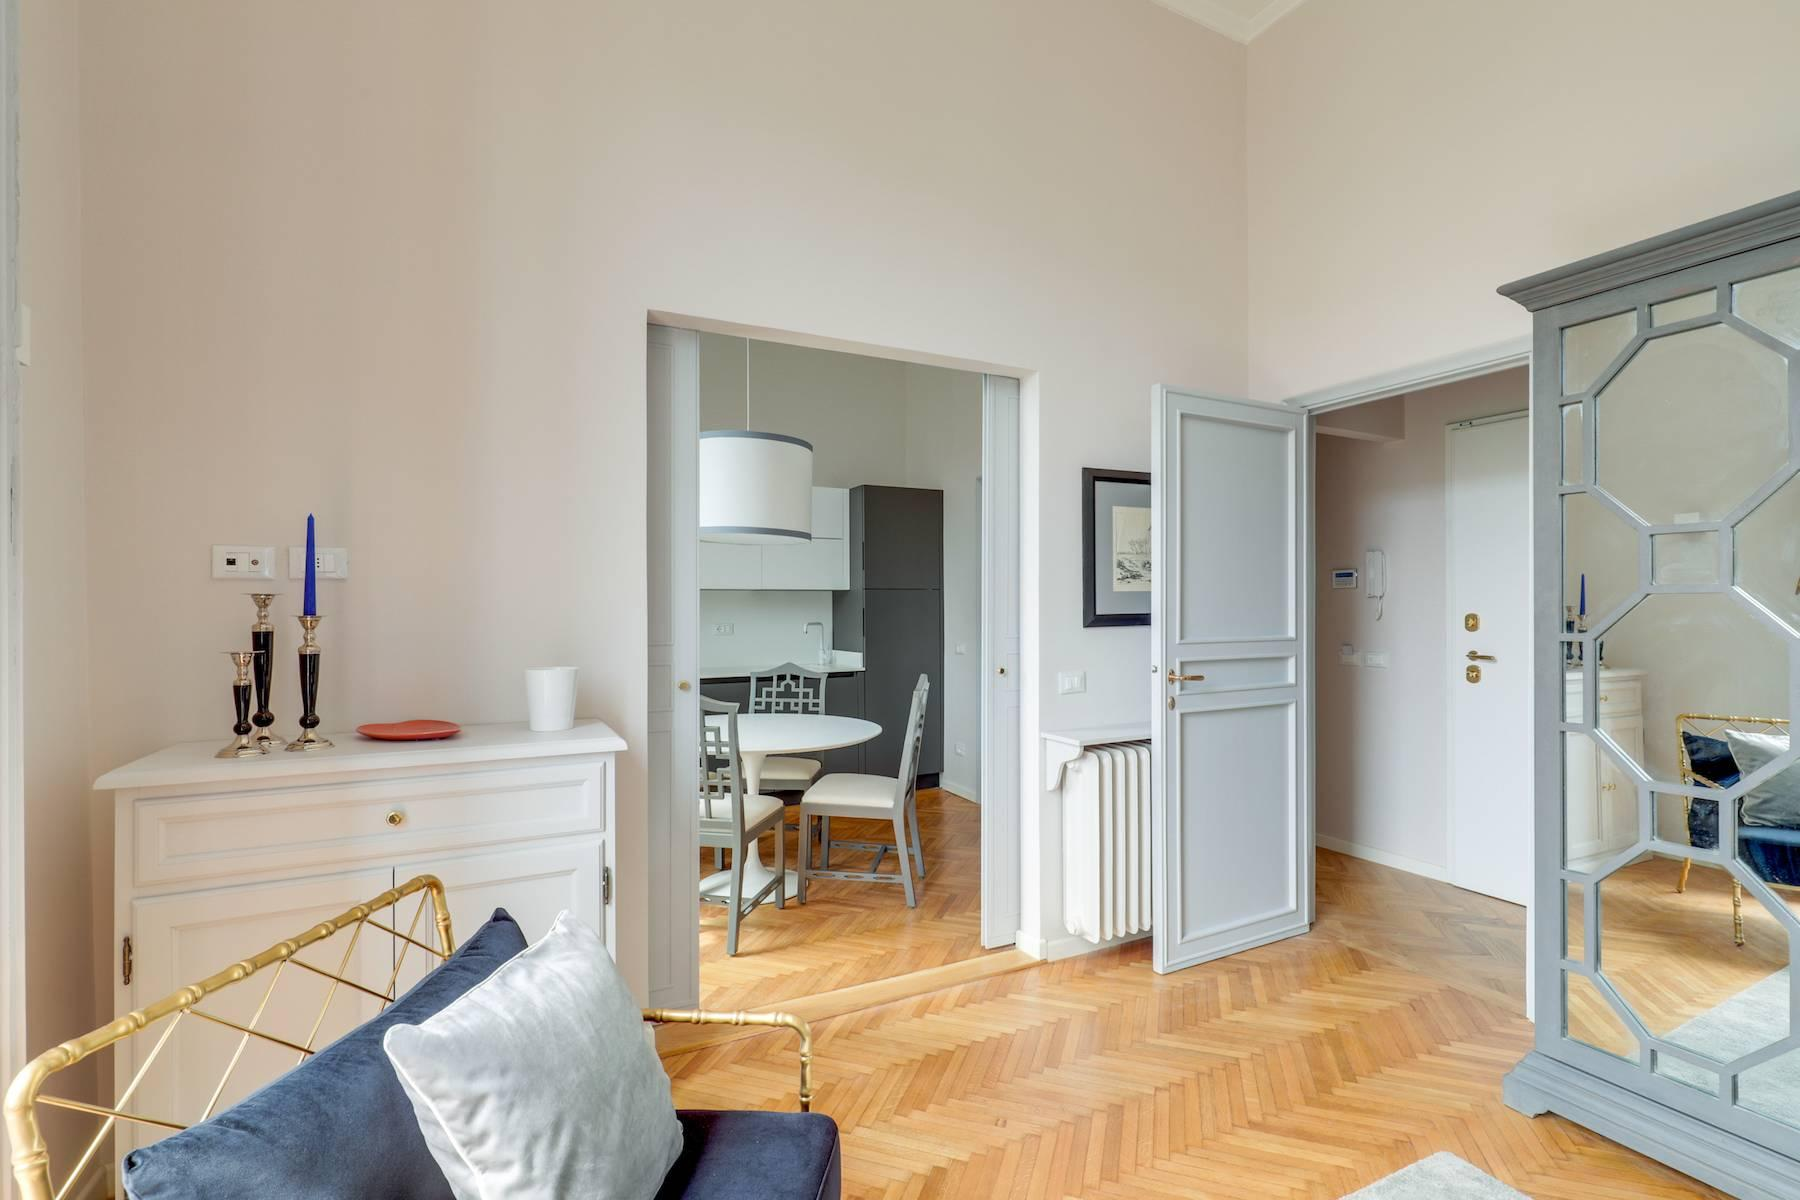 Beautifully renovated apartment overlooking Ponte Vecchio - 12